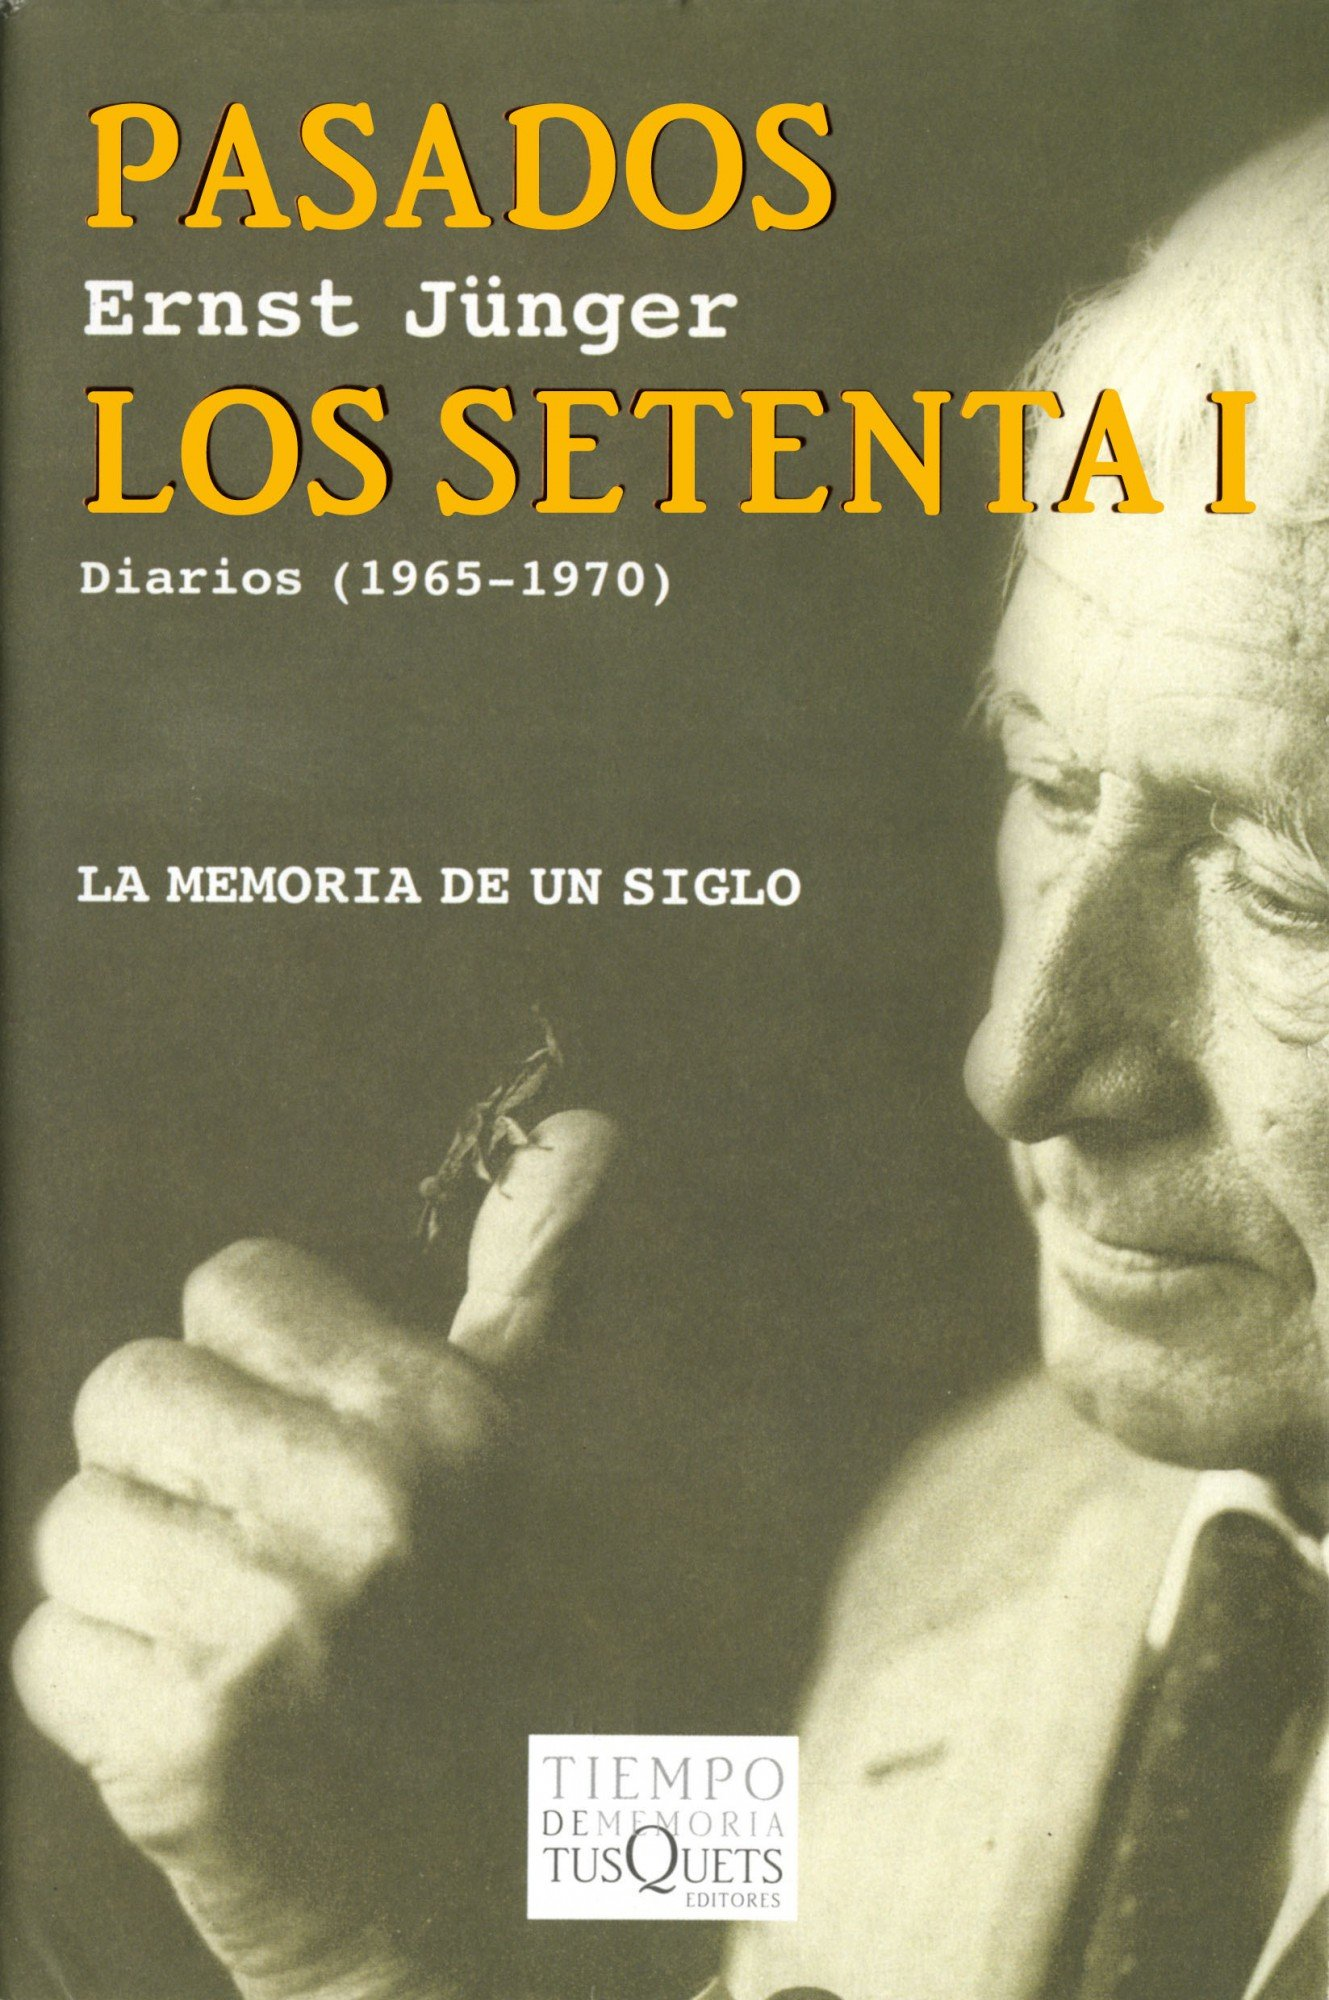 Pasados Los Setenta I - Diarios 1965-1970 (Spanish Edition): Ernst Jünger: 9788483104439: Amazon.com: Books